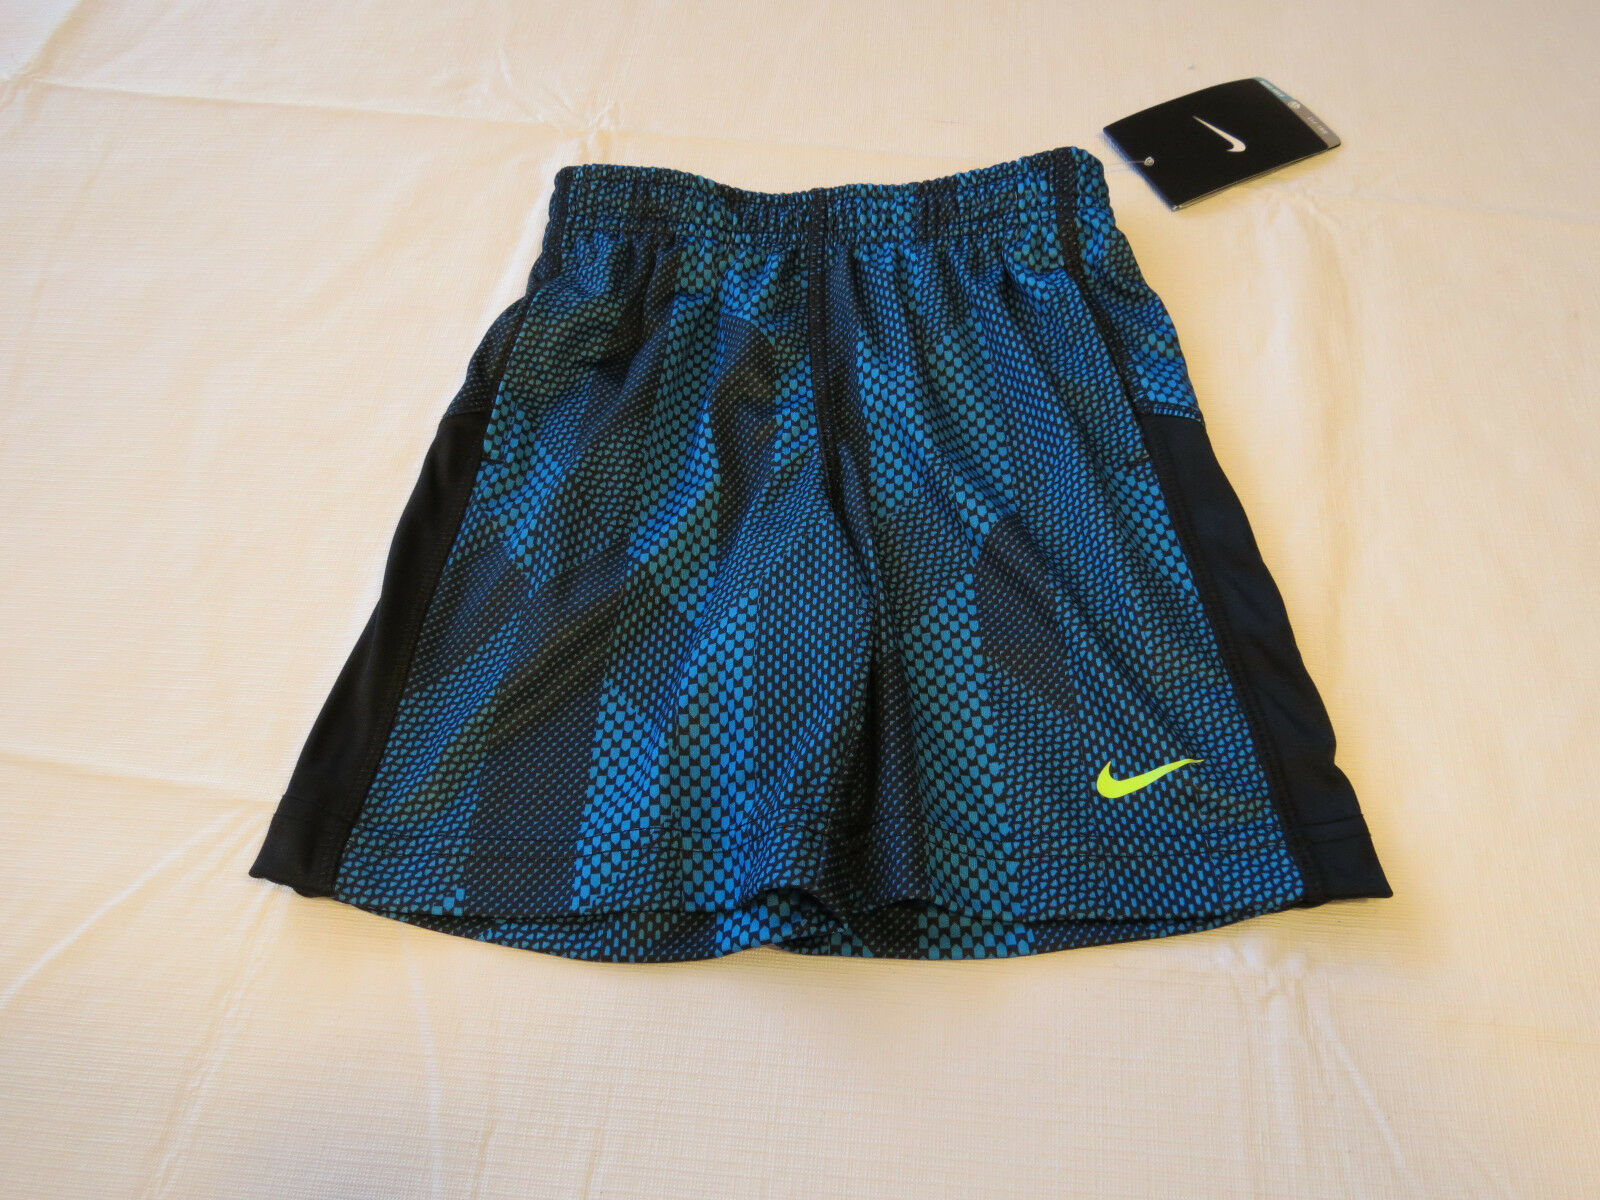 Primary image for Boys Nike Dri Fit Toddler 3T active shorts 76A538 B22 Blue Lagoon & black NWT